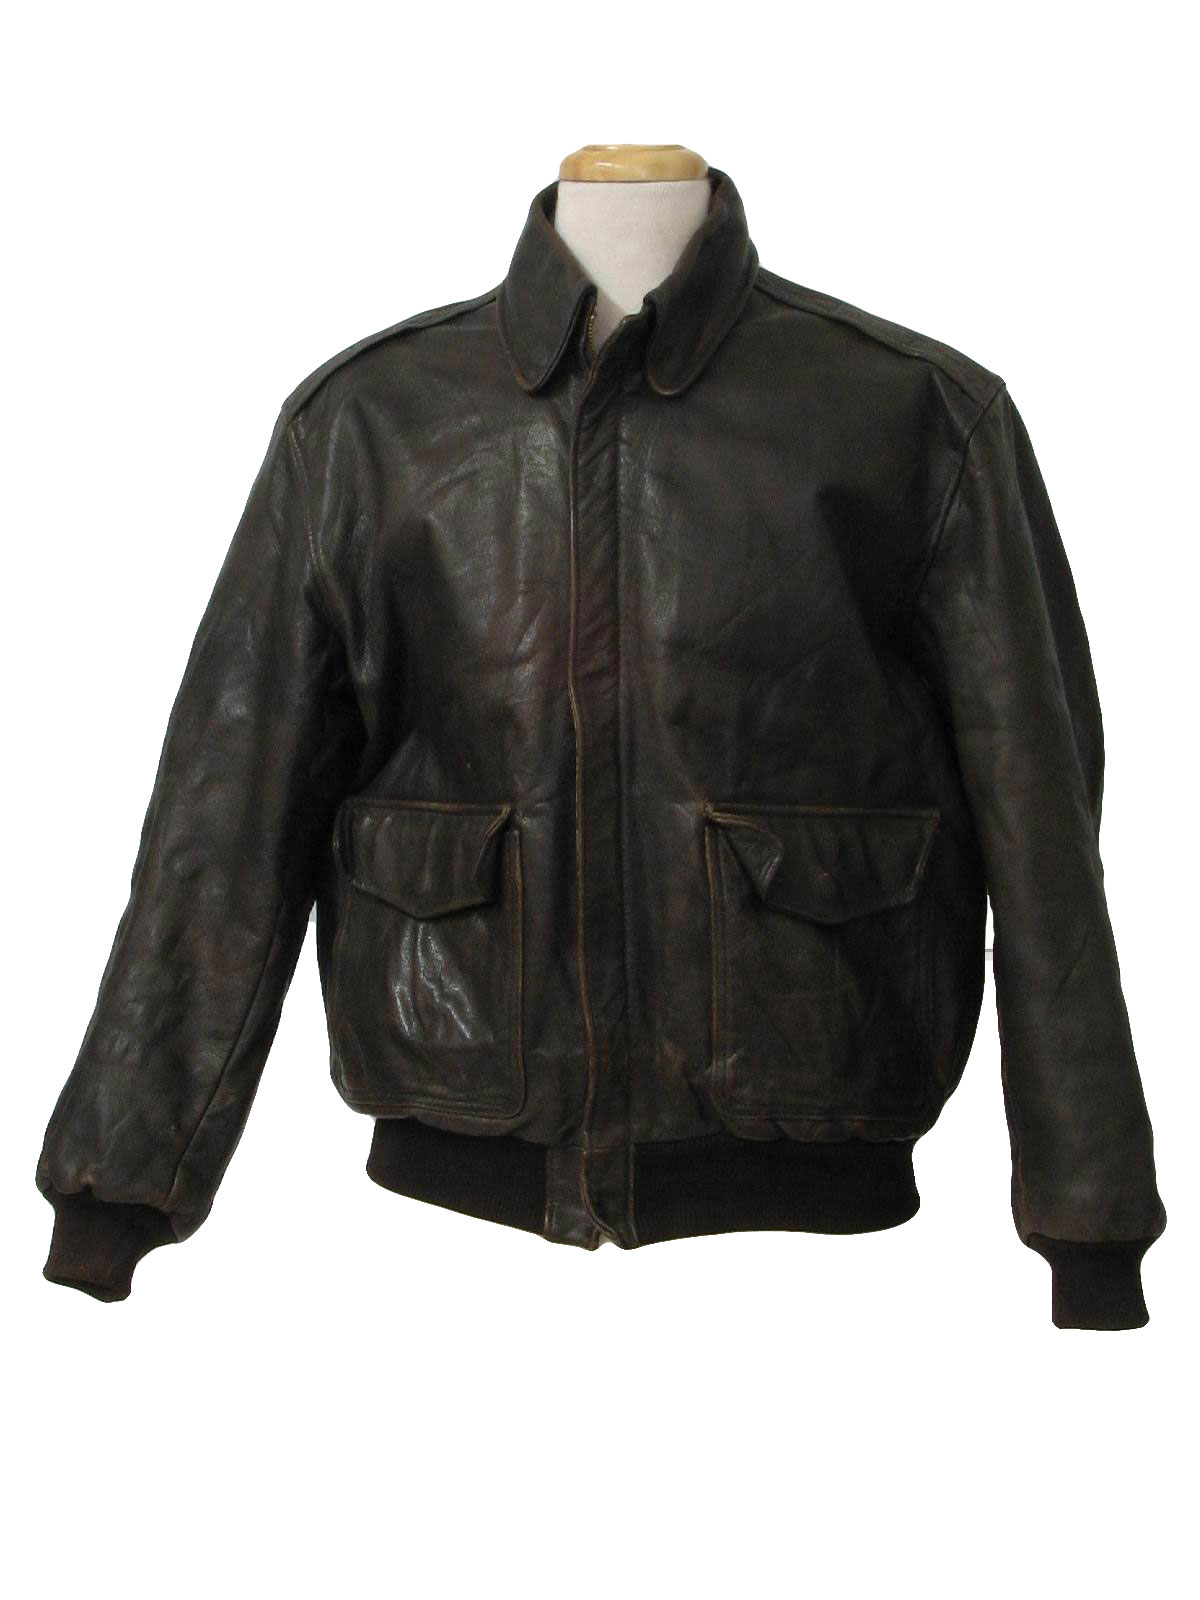 Vintage 1970's Leather Jacket: 70s (50s look) -Avirex Unlimited ...